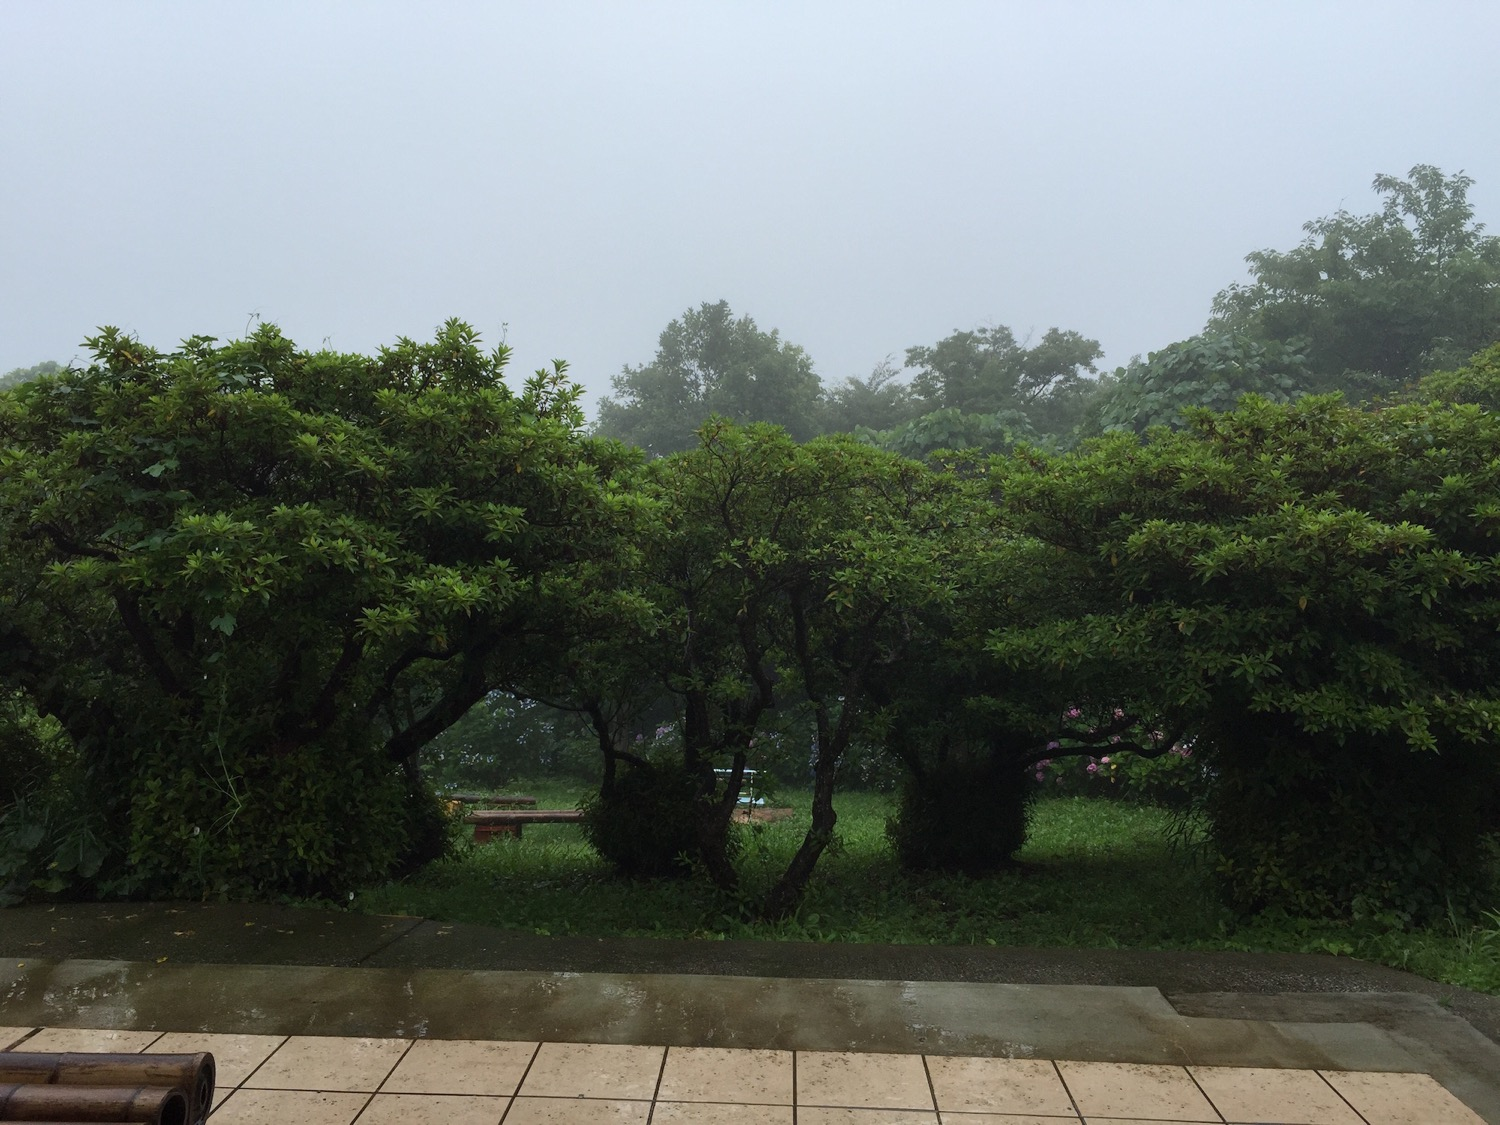 Foggy and rainy weather